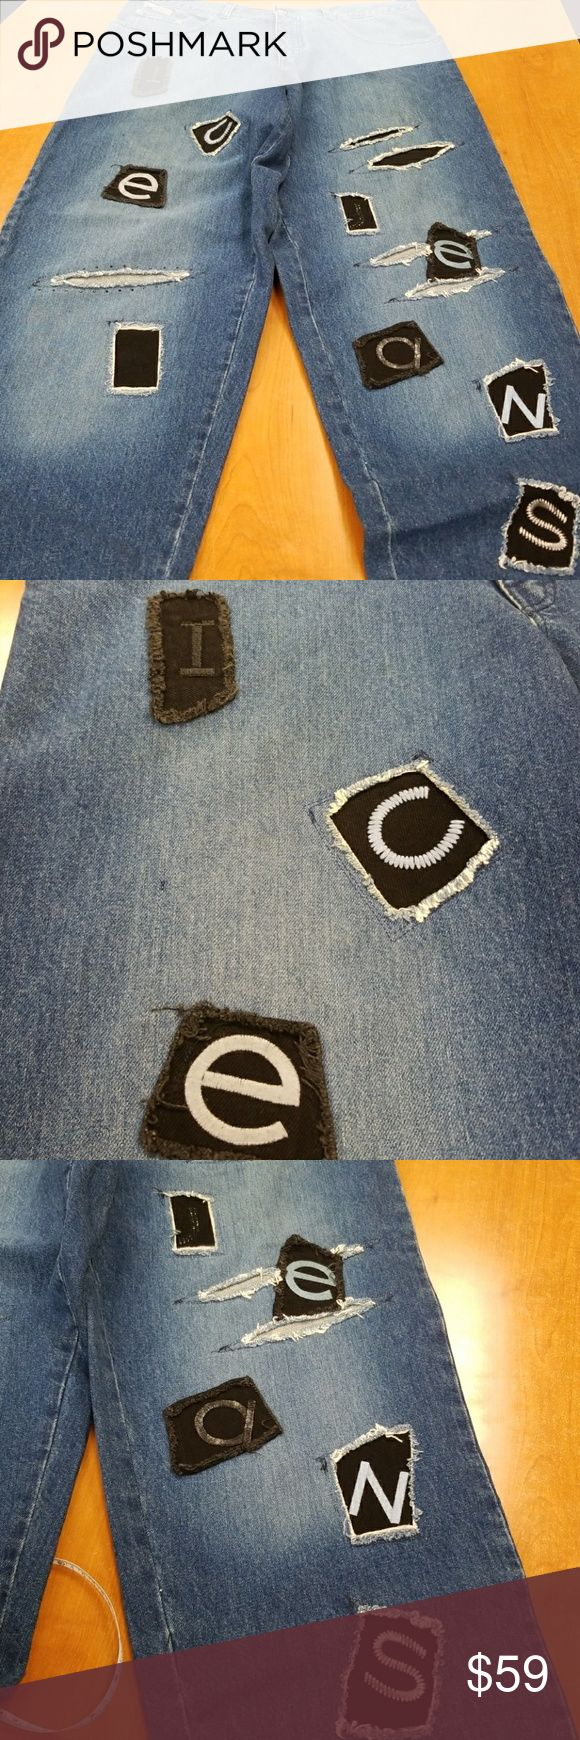 Icejean Iceburg patched denim jeans 36 x 34 EUC Inseam 34 waist 36. Ankle opening is inch across. Hips are 25 inch when laying flat across. Great condition, no issues. Clean hem, no thigh rub, great like new condition. You will love this style and statement. The holes are patched behind, quality!  Bin6 Iceberg Jeans Relaxed